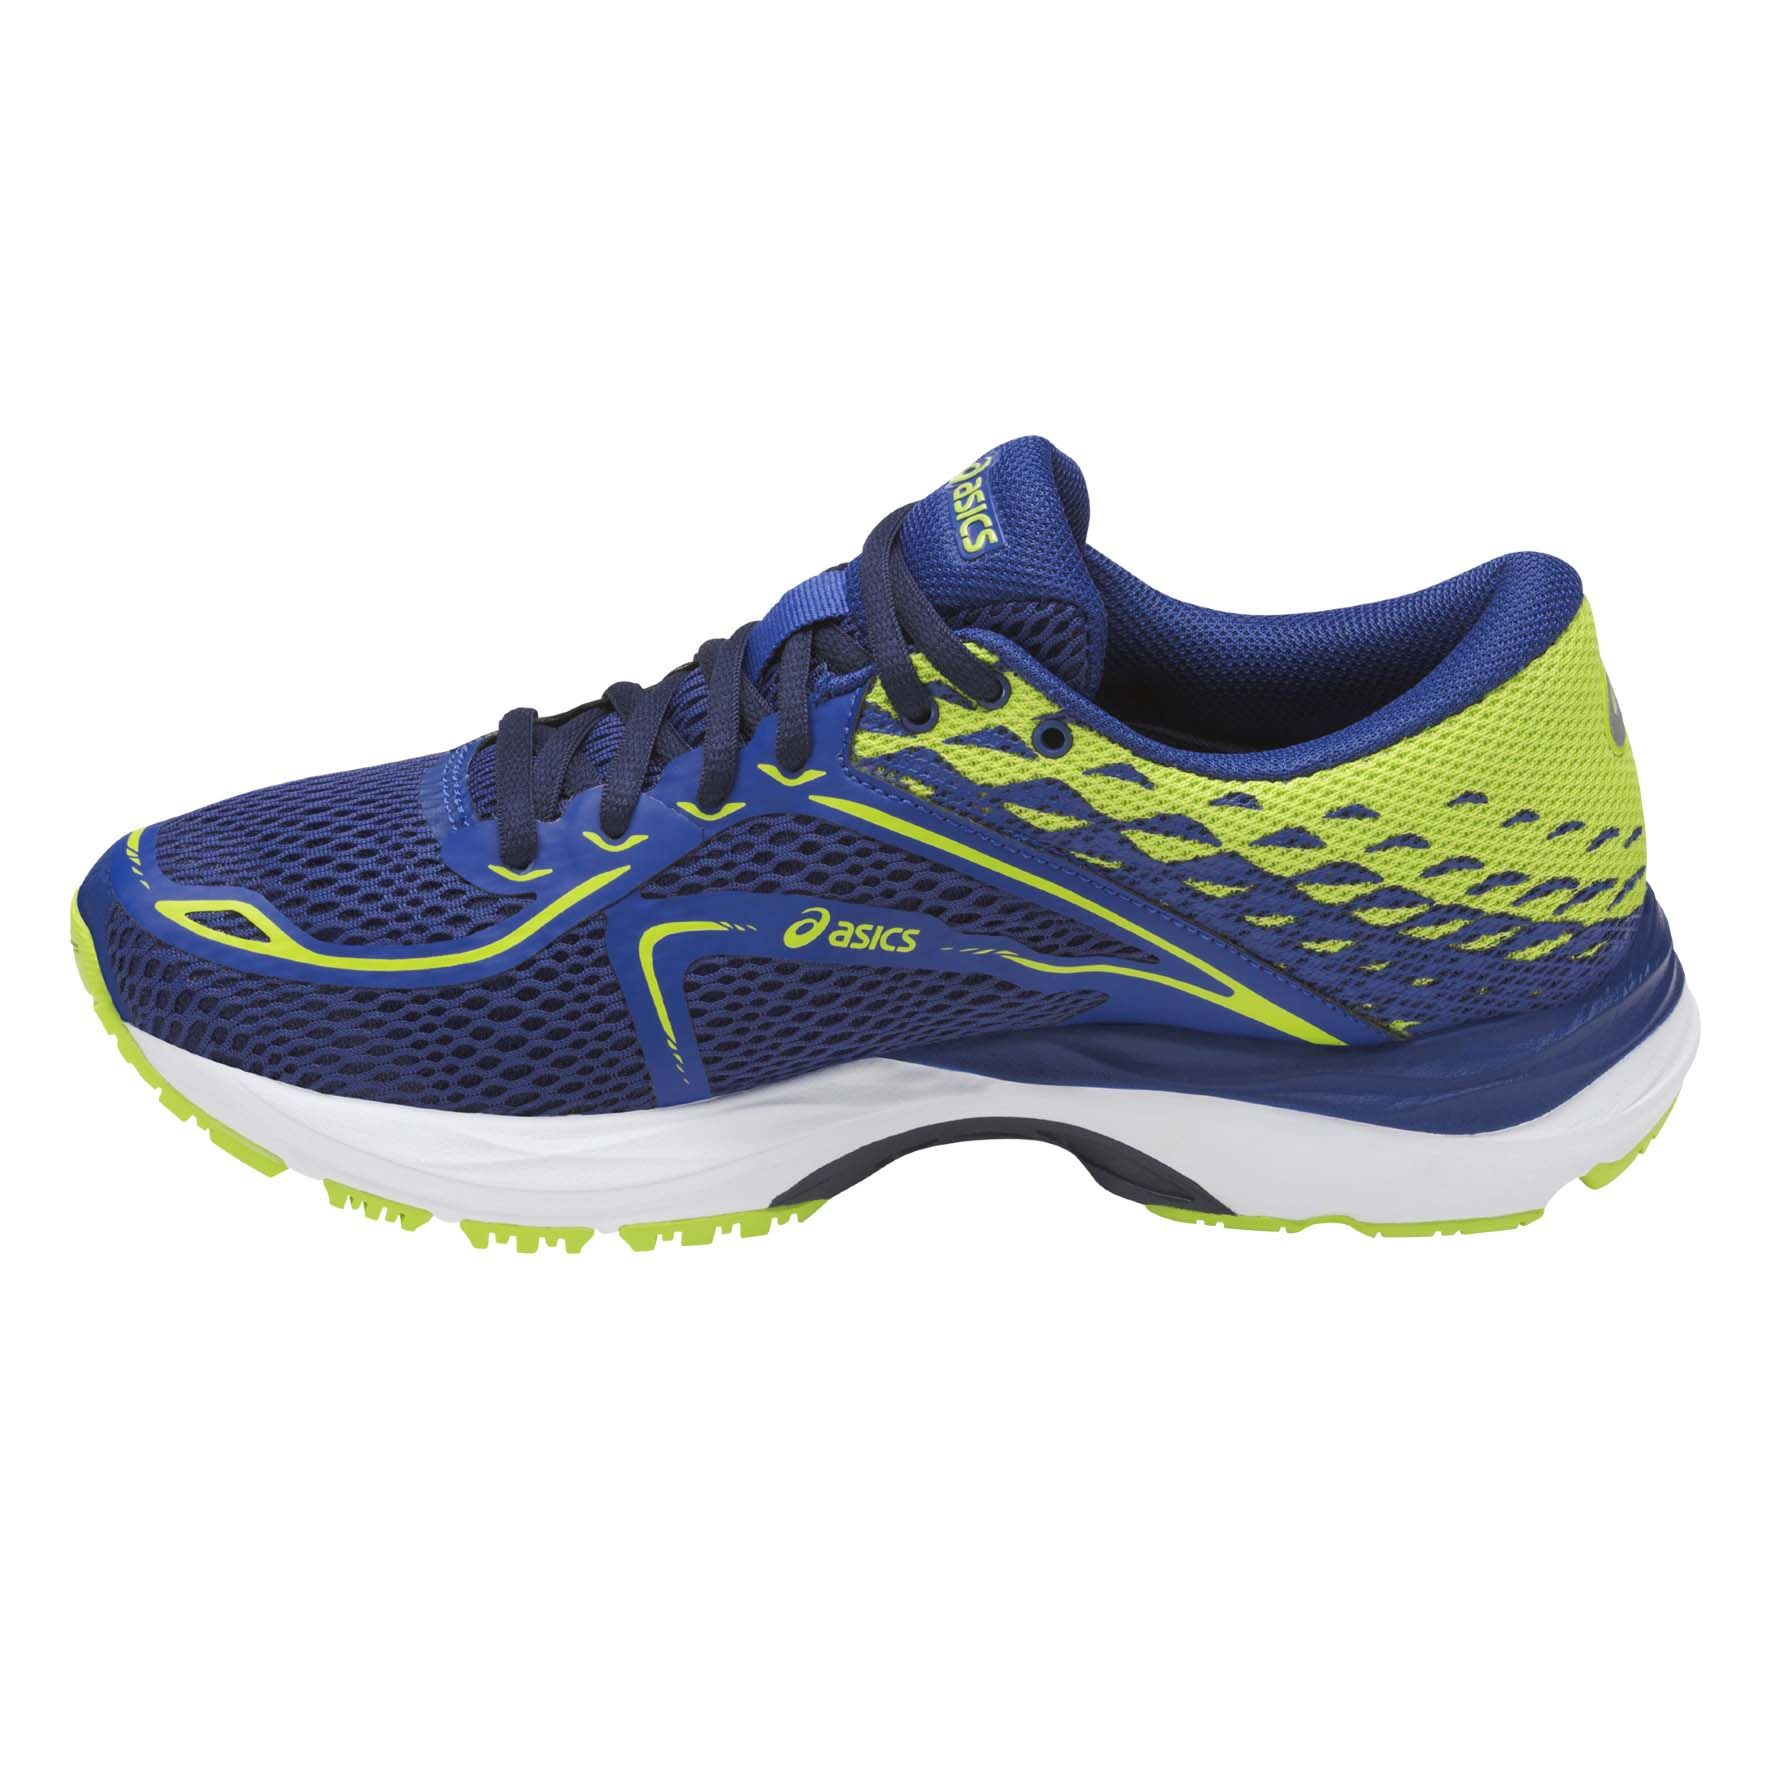 Boys Running Shoes Size